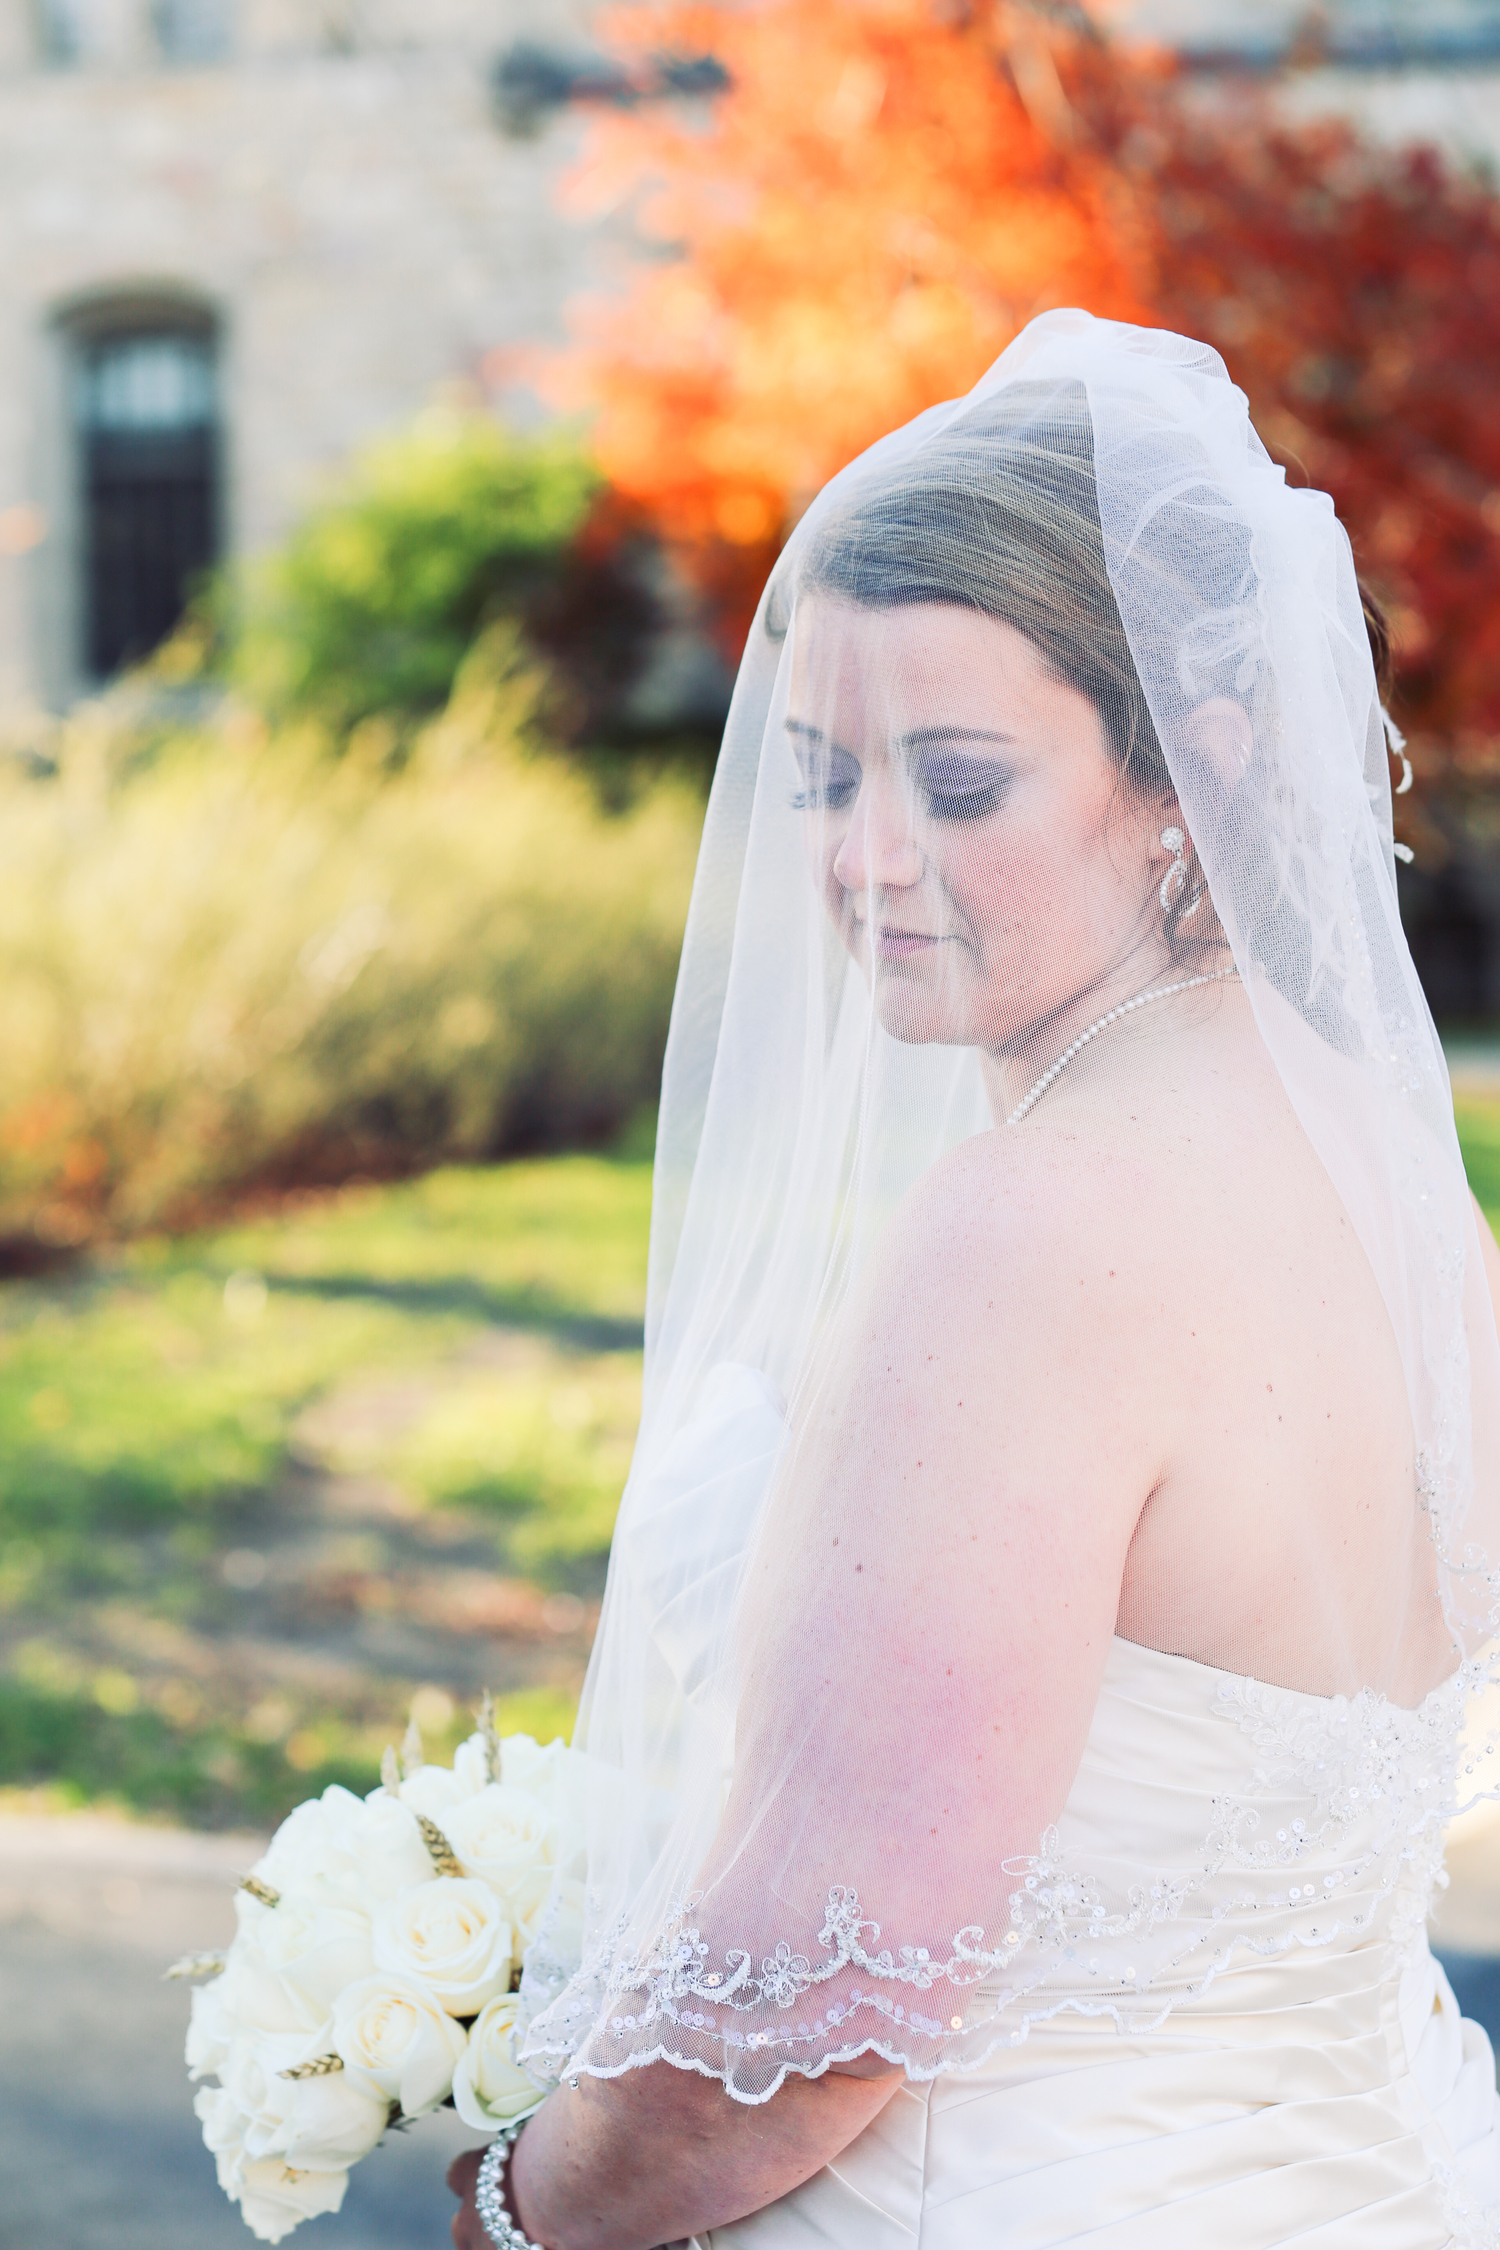 Sharai_Siemens_Photography_Wedding_Wilsons28.jpg